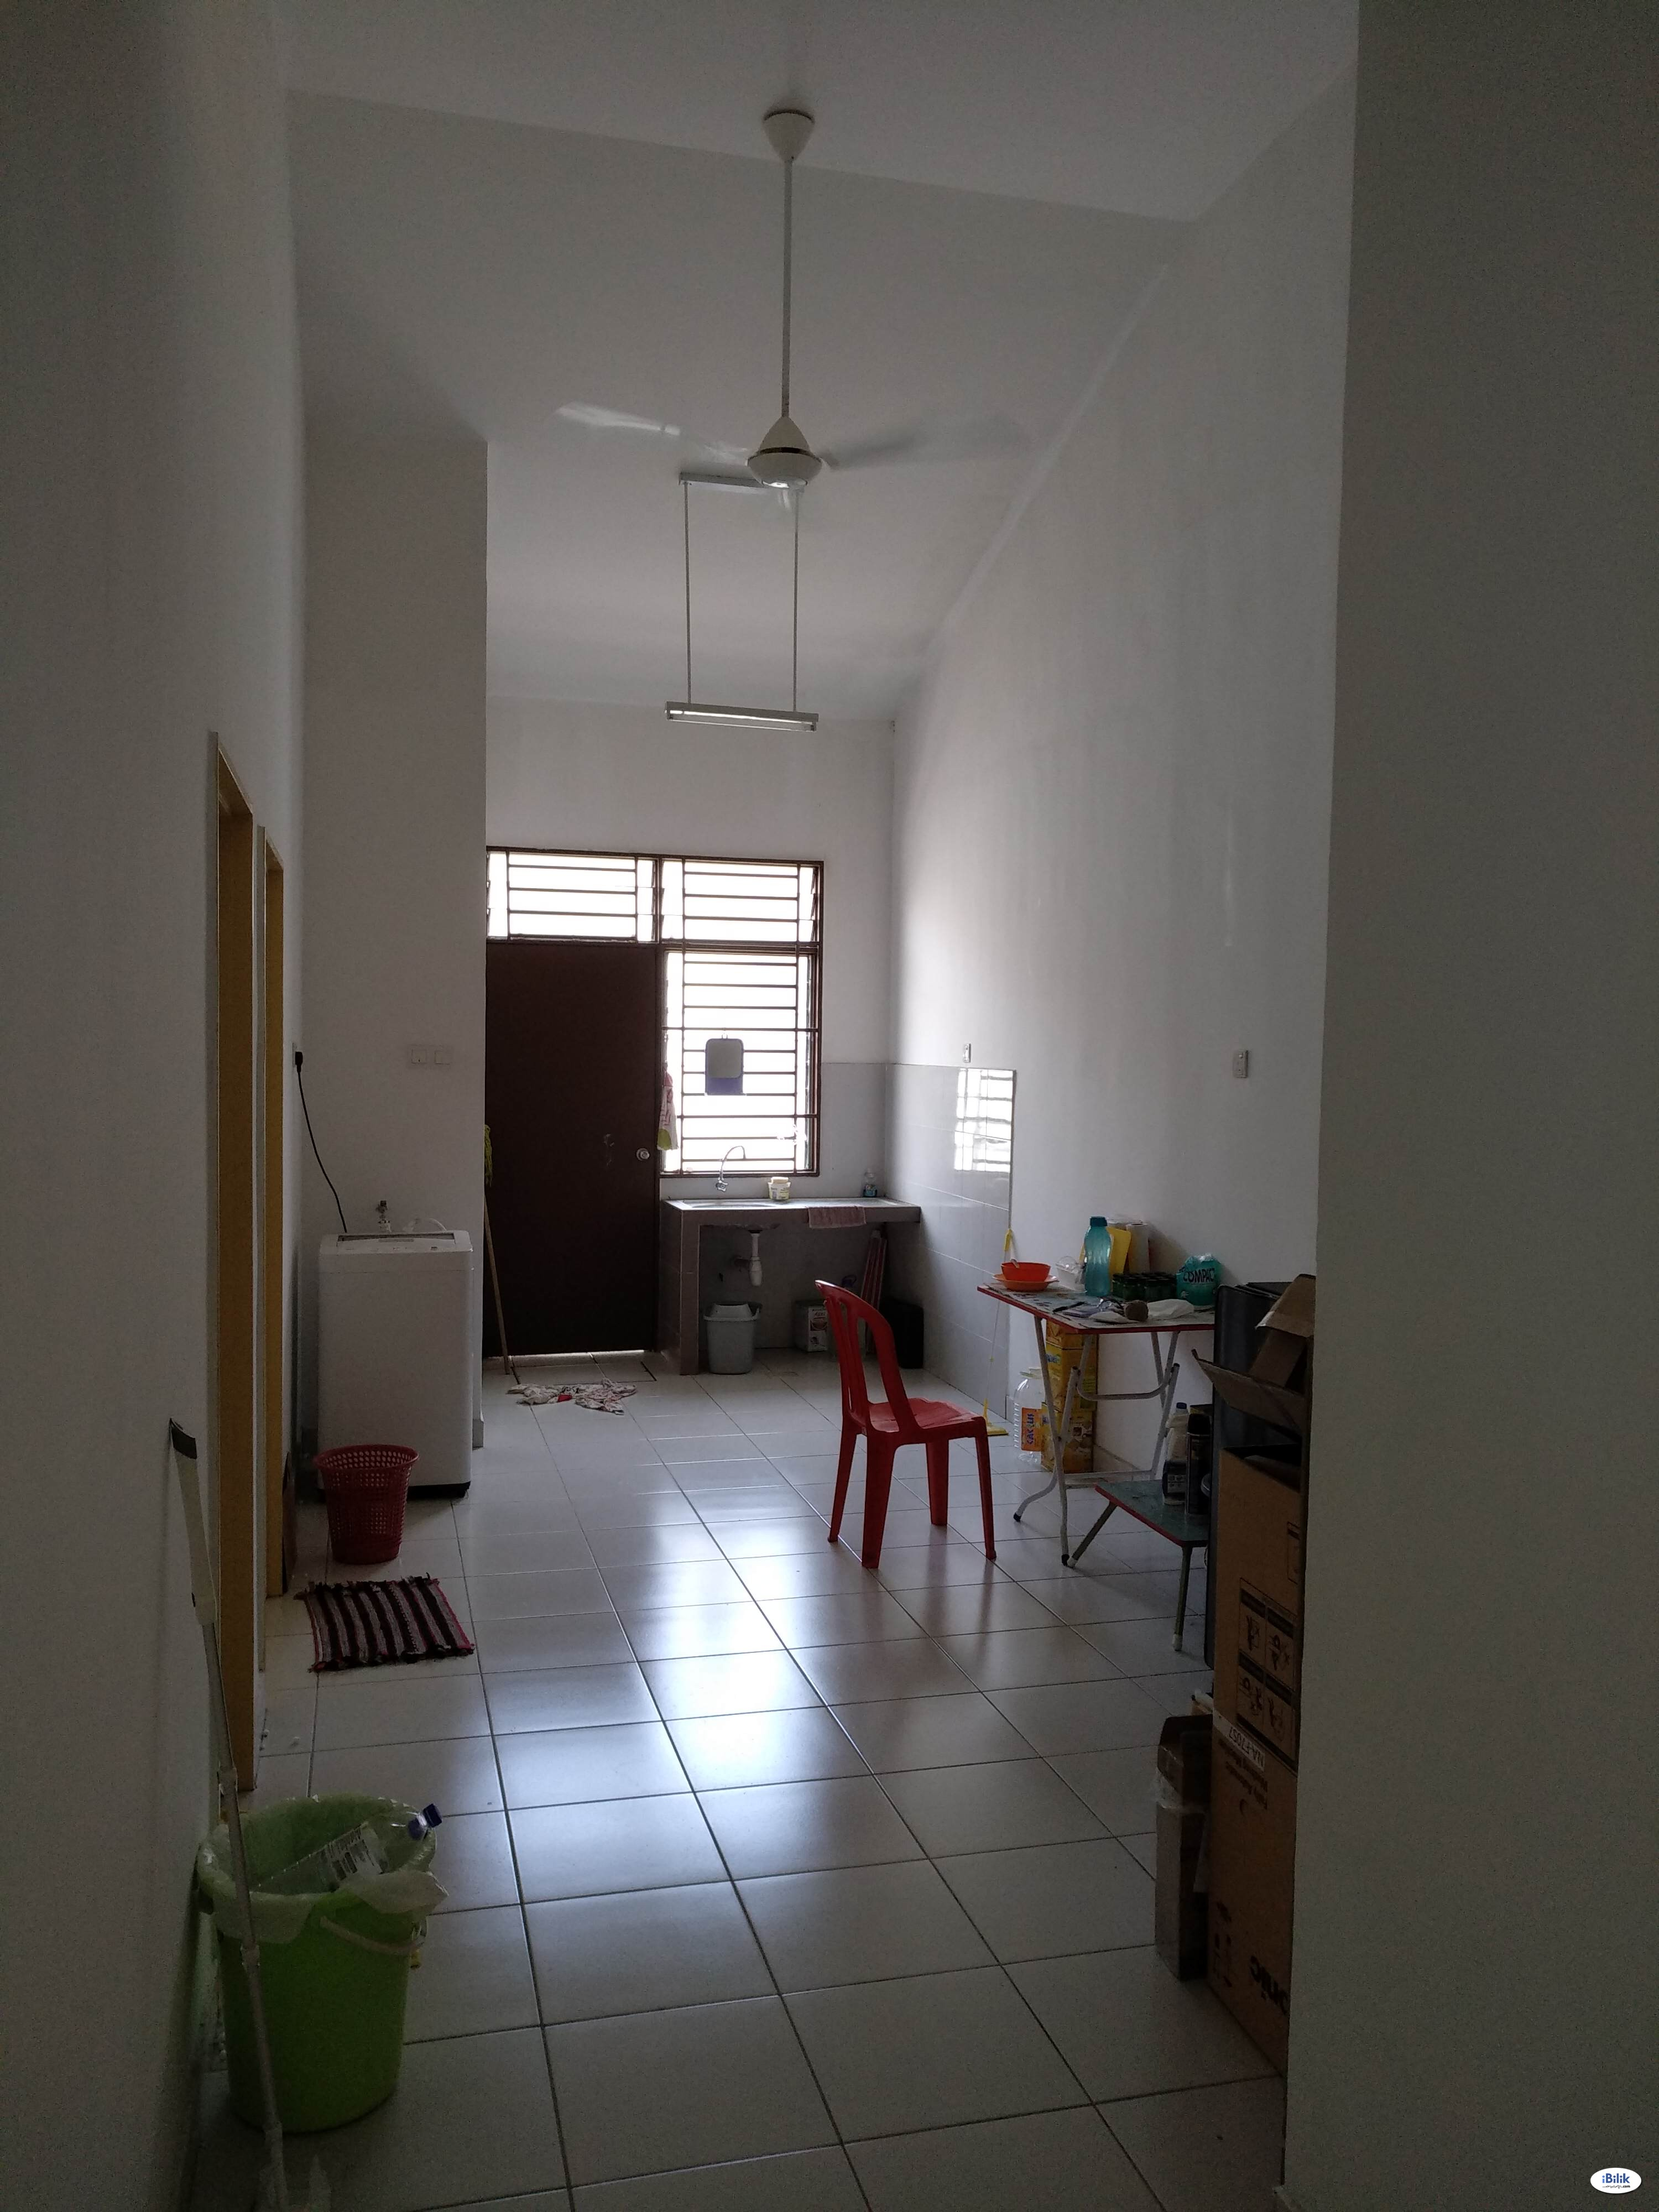 Kulai/senai Only RM300 President suite room fully furnish 2019,included utility fee.. Direct deal owner